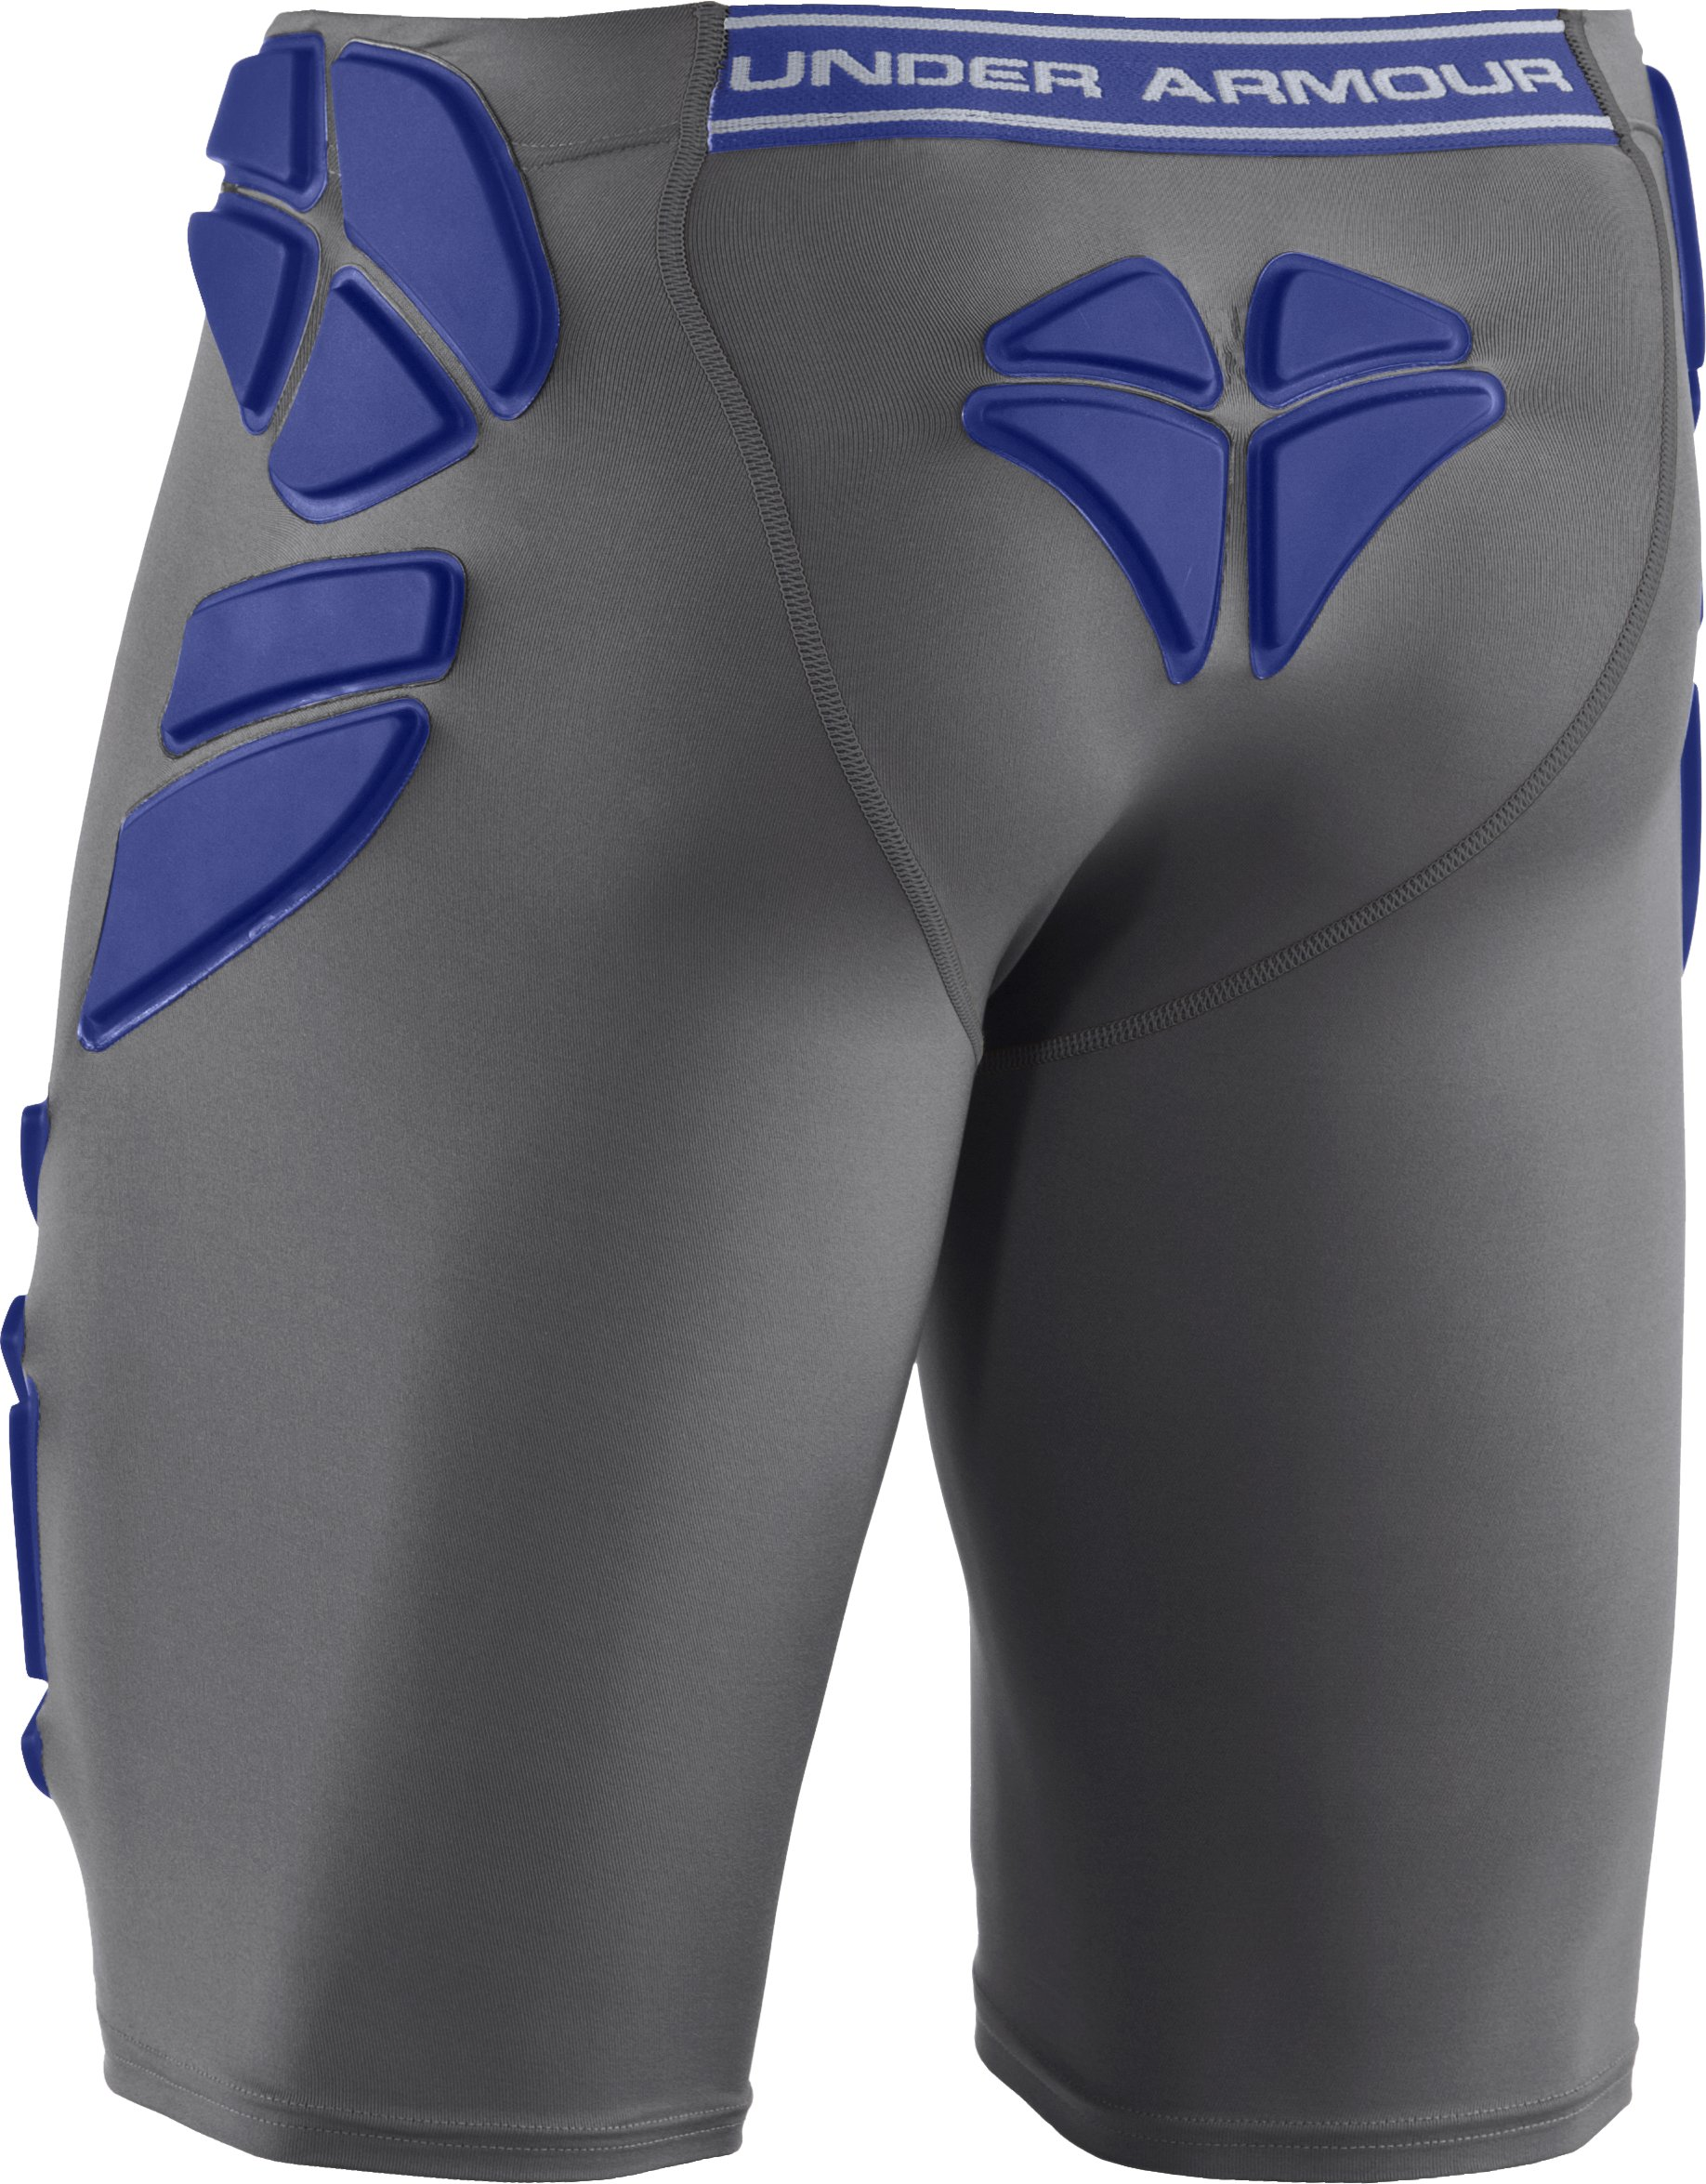 Men's Gameday Armour® Girdle, Graphite,